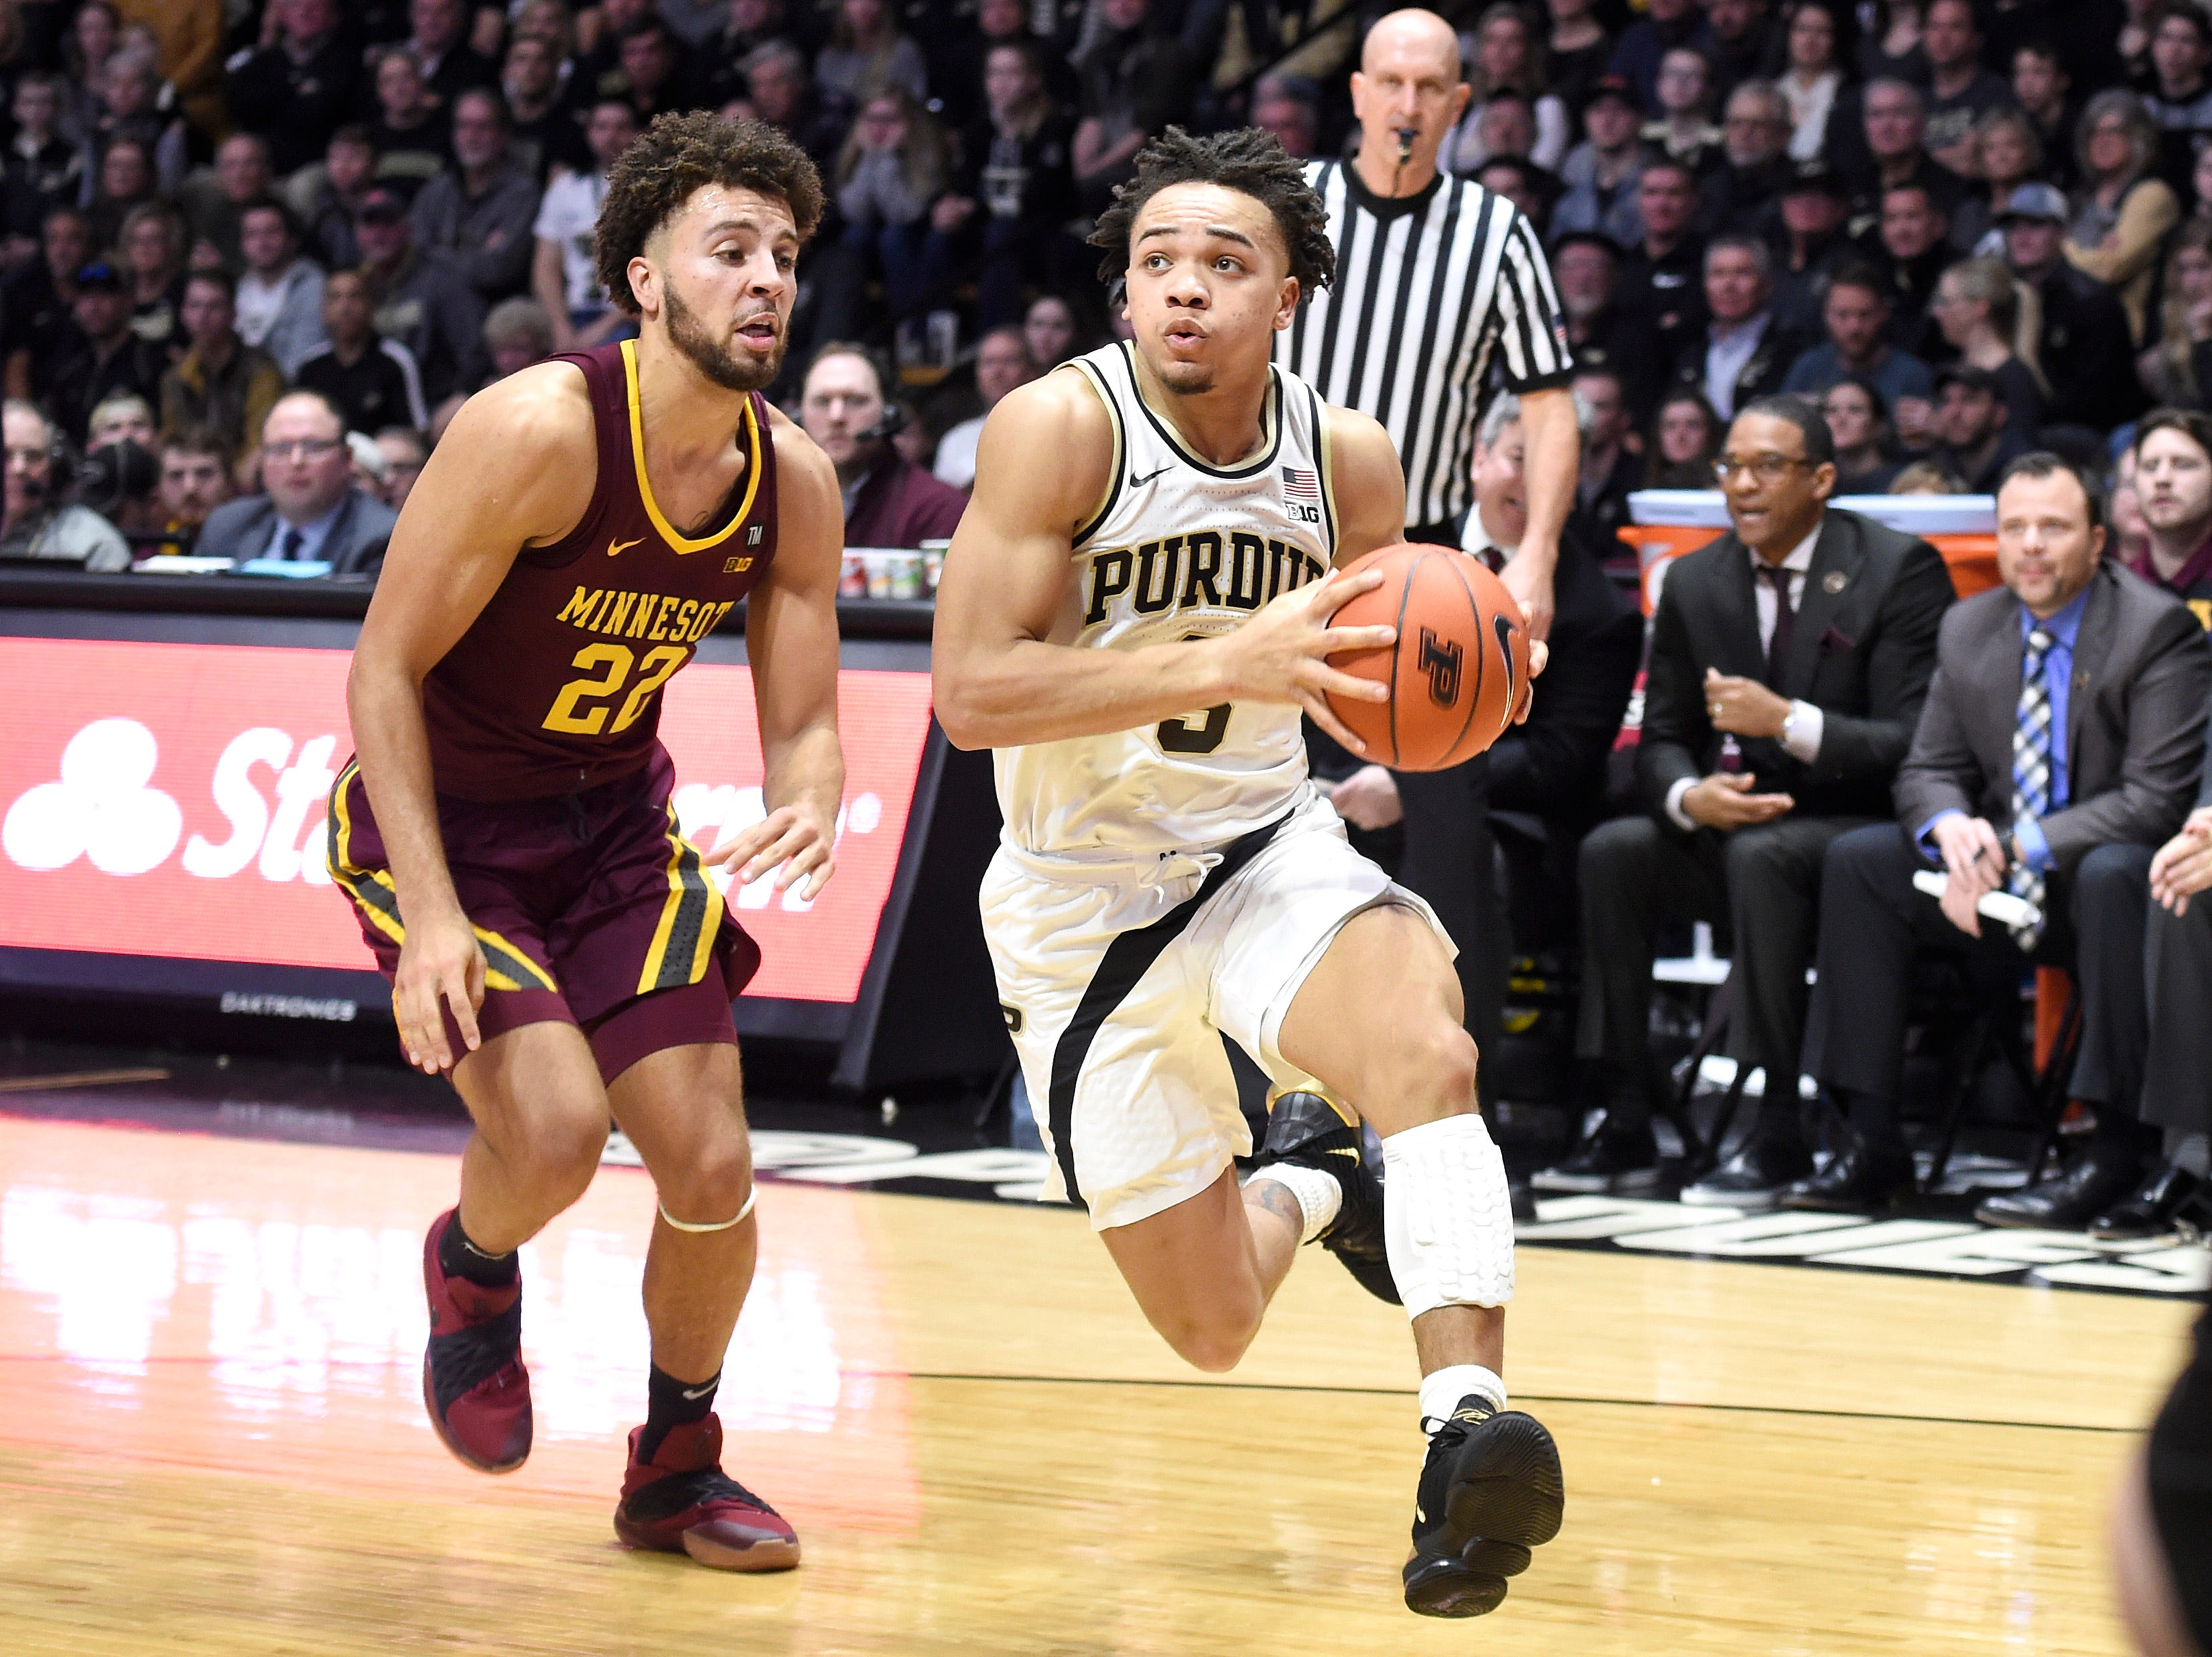 Feb 3, 2019; West Lafayette, IN, USA; Purdue Boilermakers guard Carsen Edwards (3) dribbles the ball past Minnesota Golden Gophers guard Gabe Kalscheur (22) in the first half at Mackey Arena. Mandatory Credit: Sandra Dukes-USA TODAY Sports